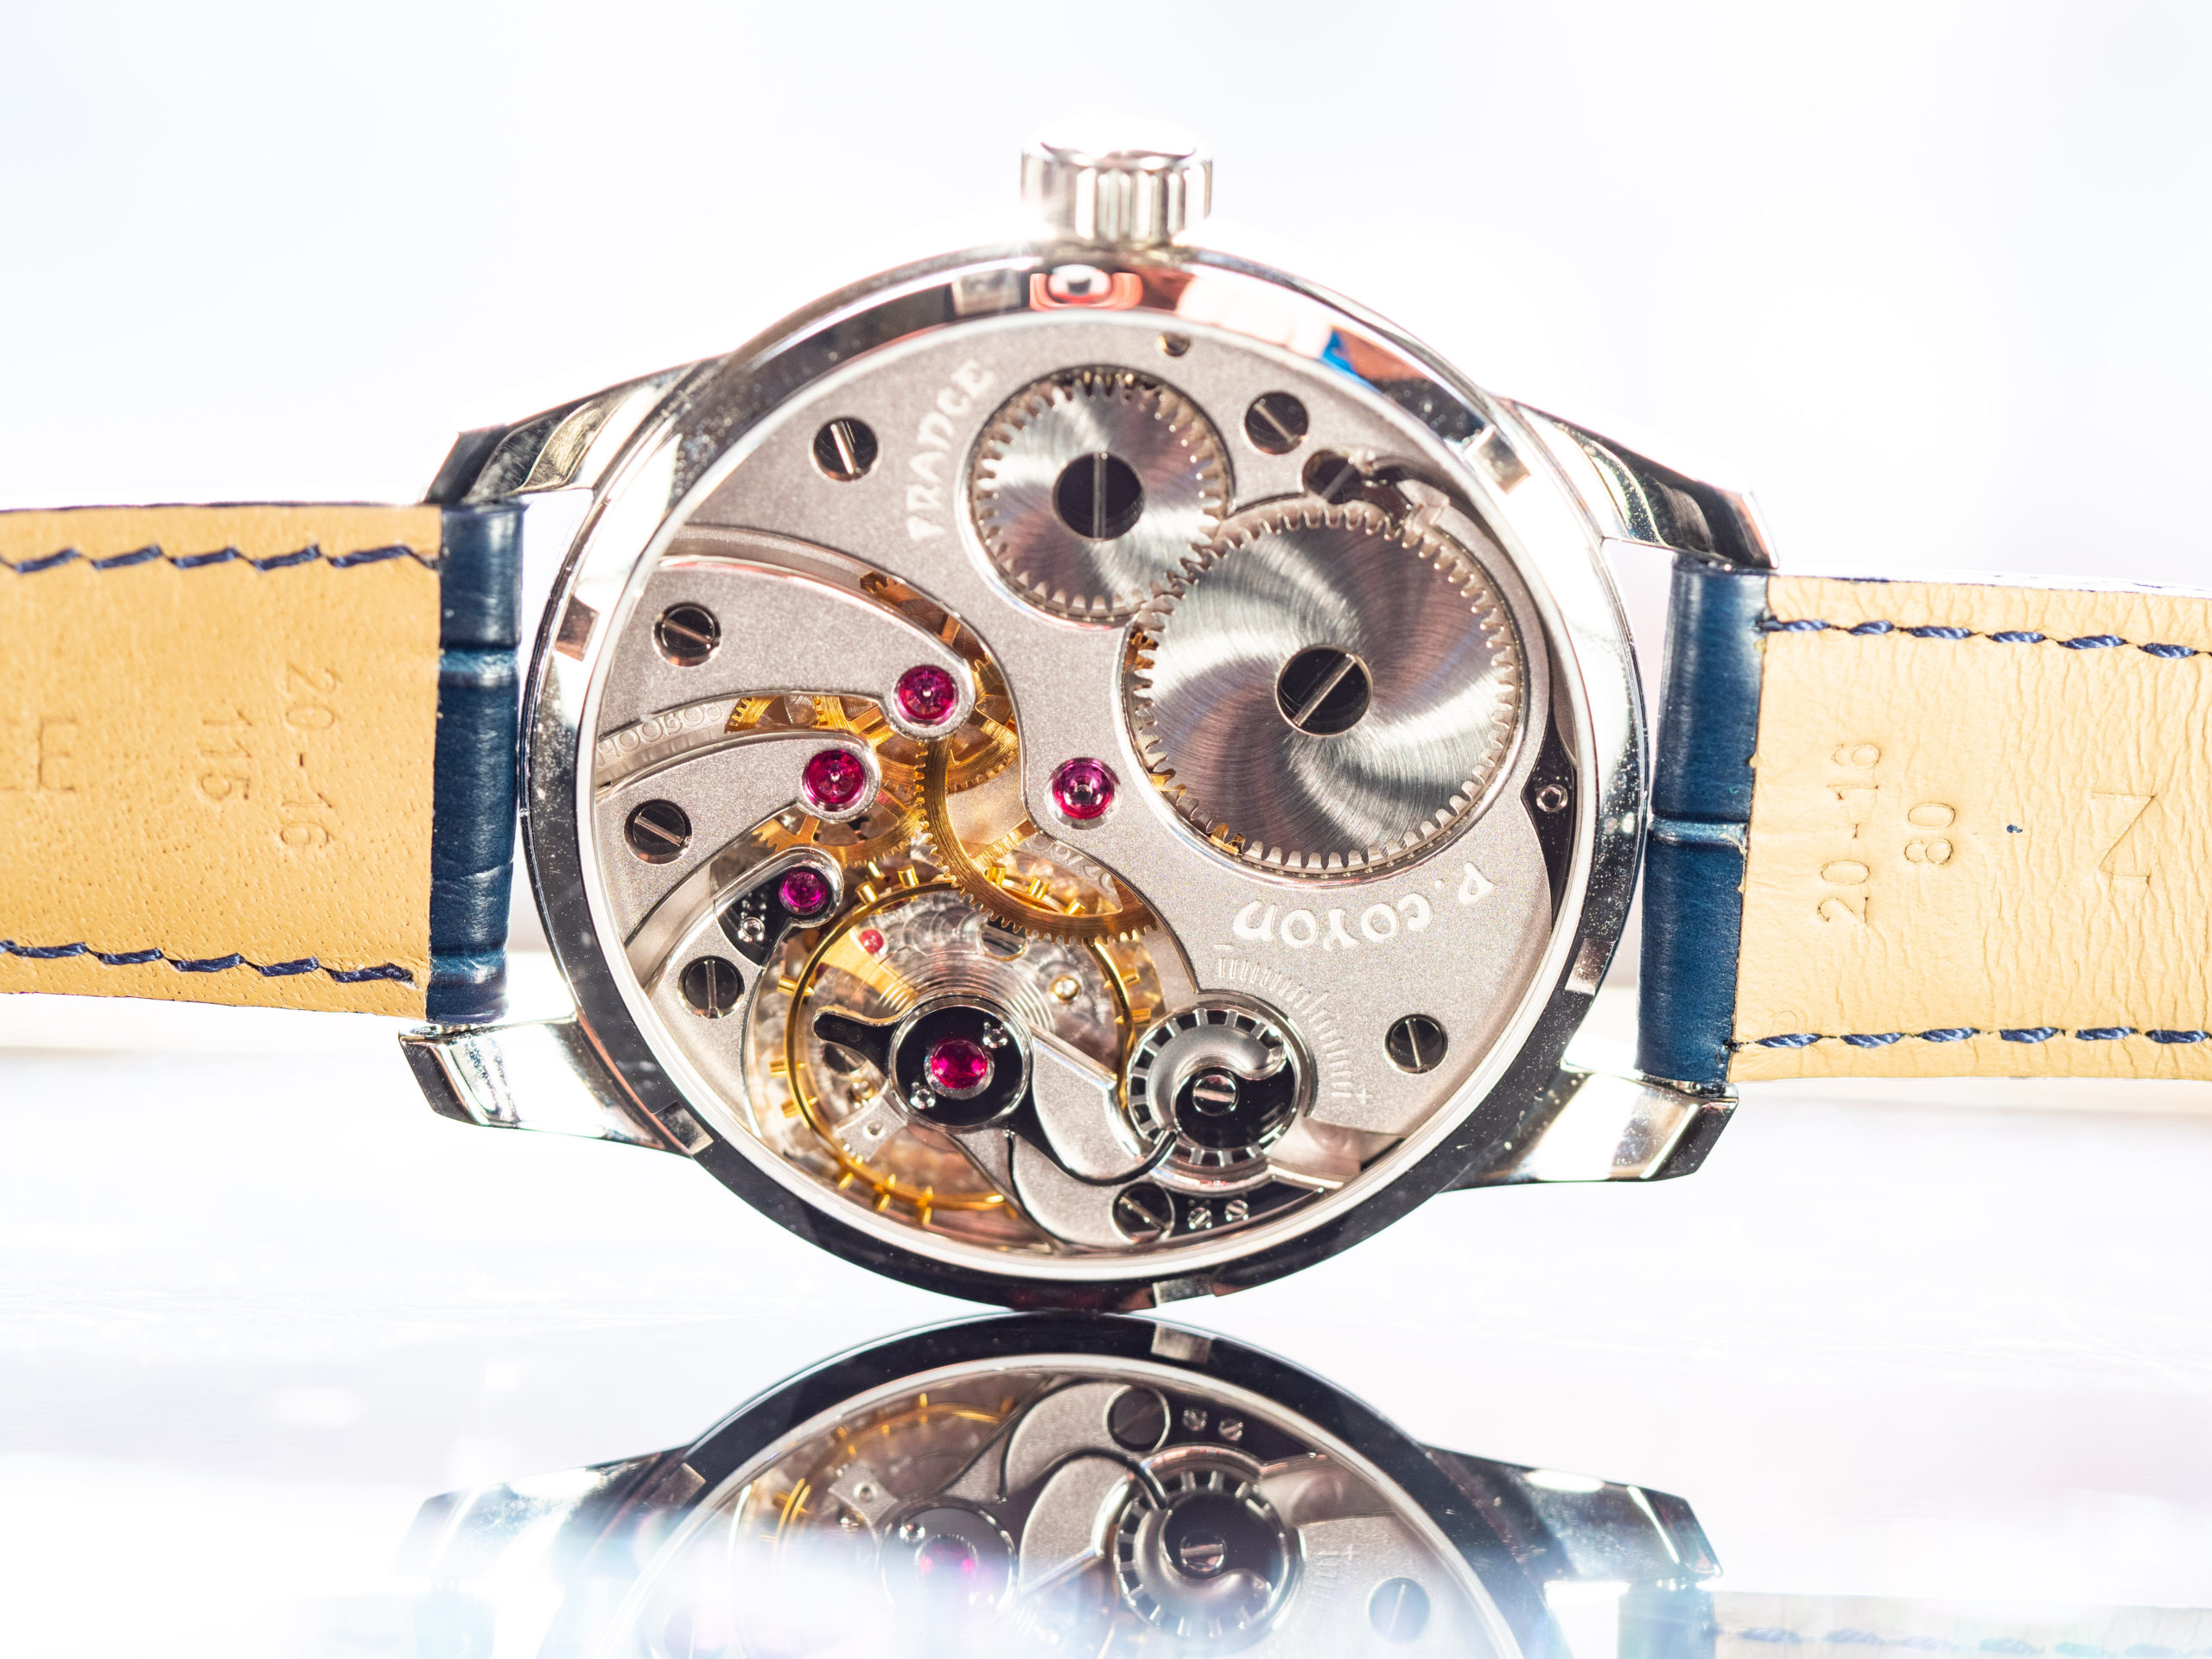 Pascal Coyon Chronometre Series 1 Movement